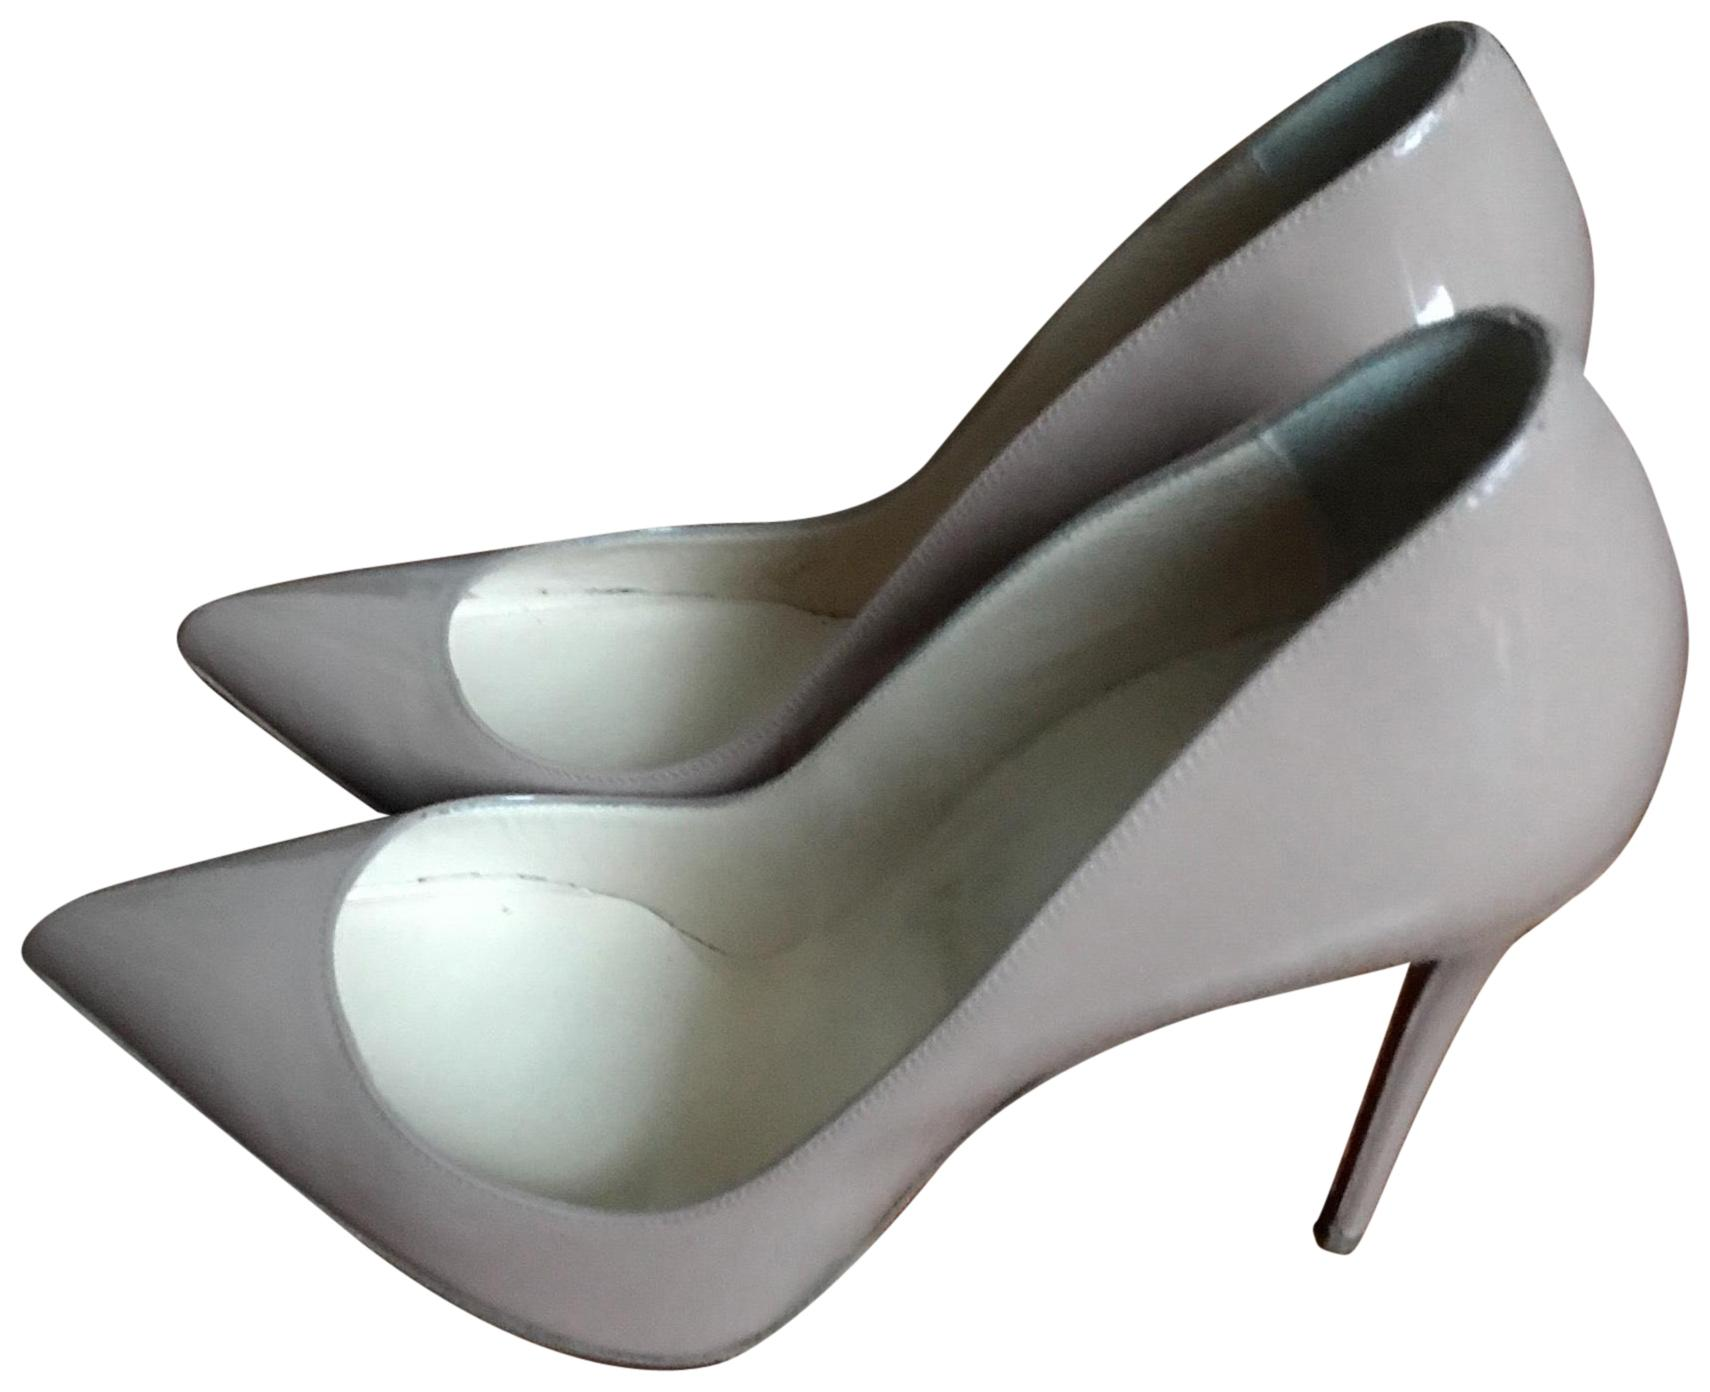 df3dd806ad7 Beige Pigalle Pigalle Pigalle Follies Patent Leather Pumps Size US 8 ...